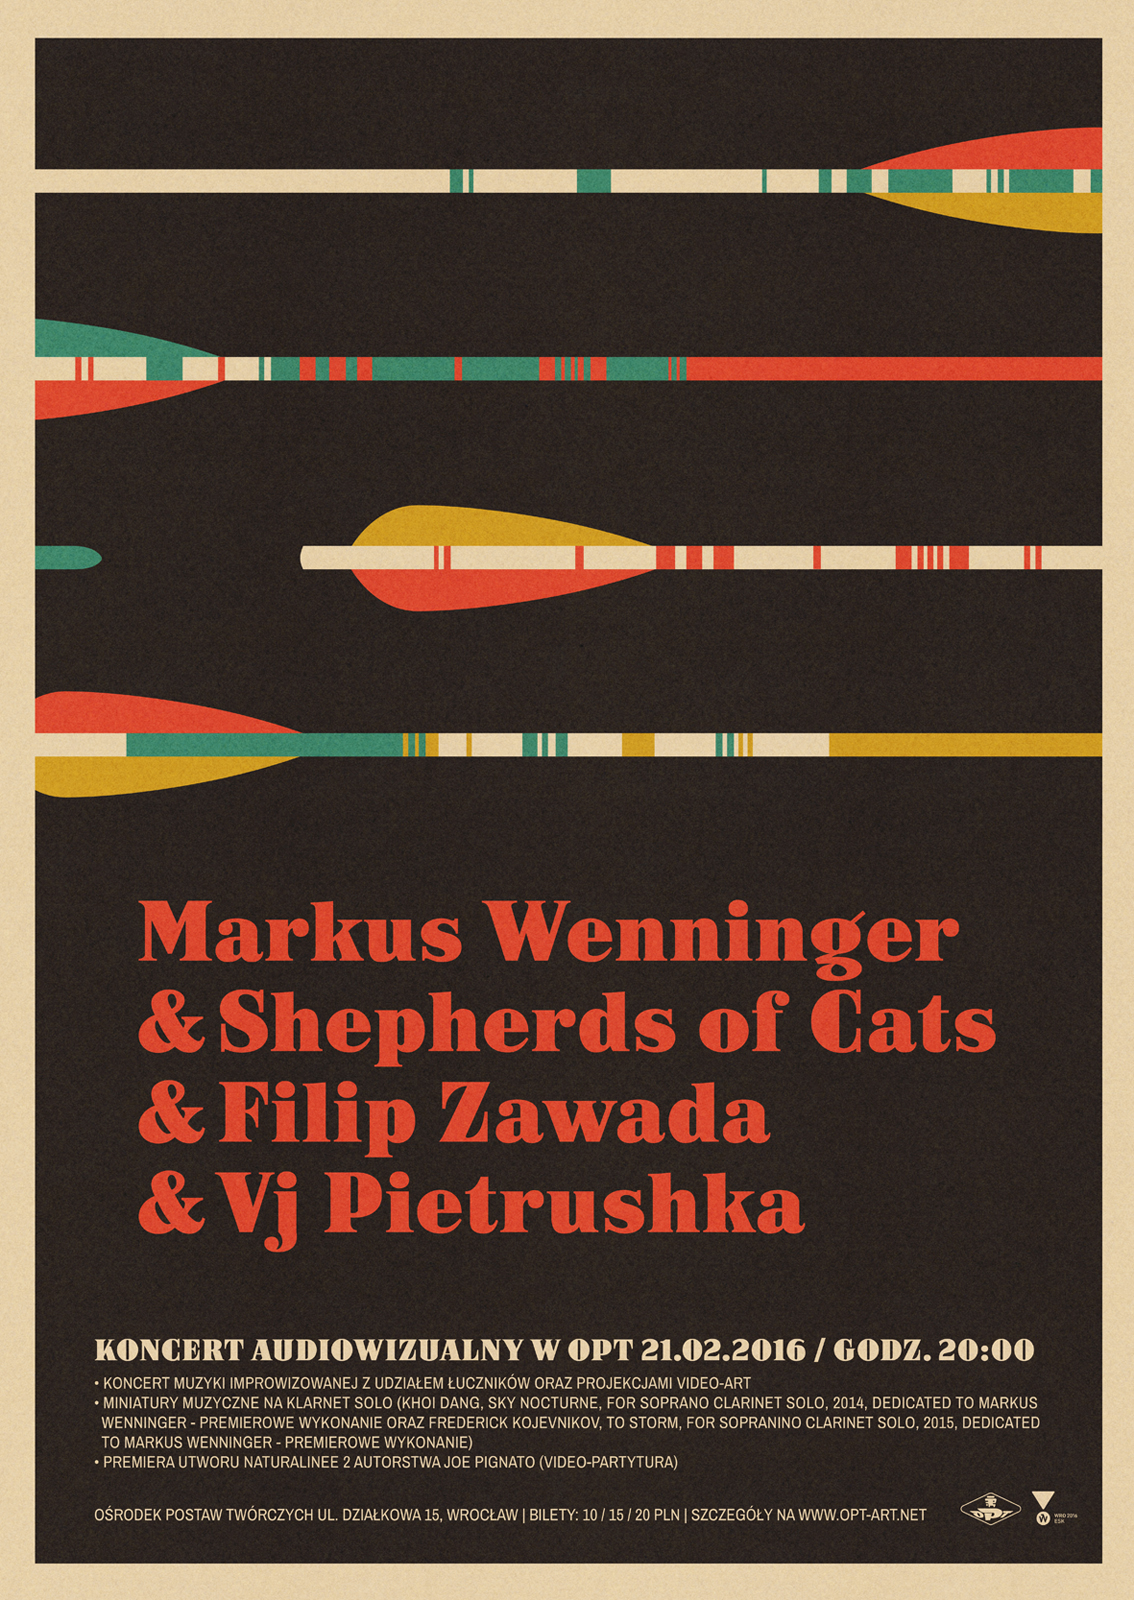 Markus Wenninger & Shepherds of Cats & Vj Pietrushka & Filip Zawada